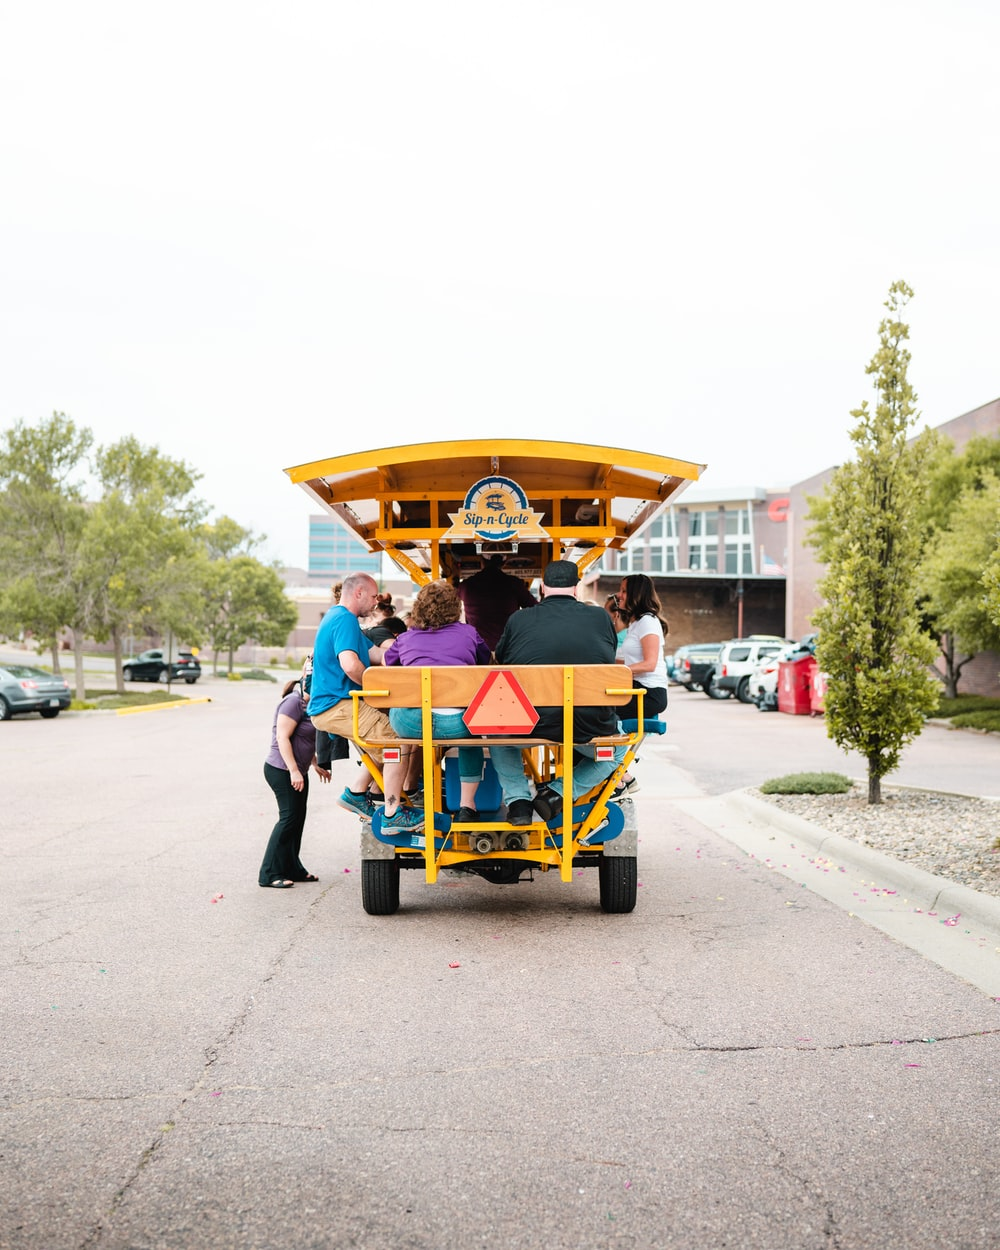 man in blue shirt riding yellow and red cart on road during daytime